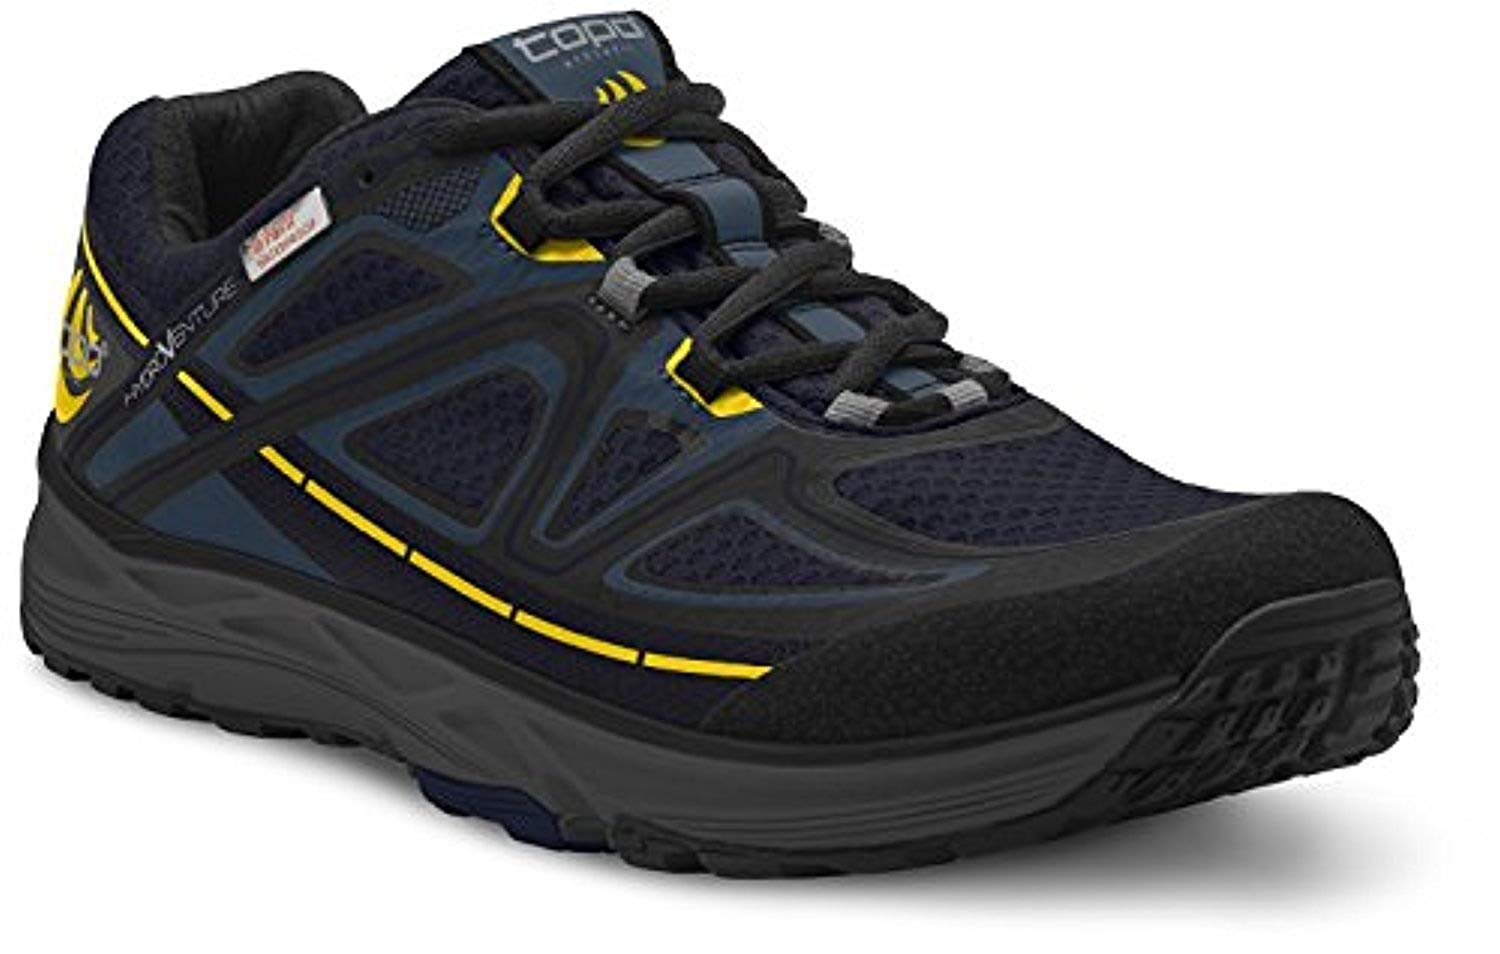 Topo Men's Hydroventure Trail Running Shoes Navy/Black 10.5 & Headband